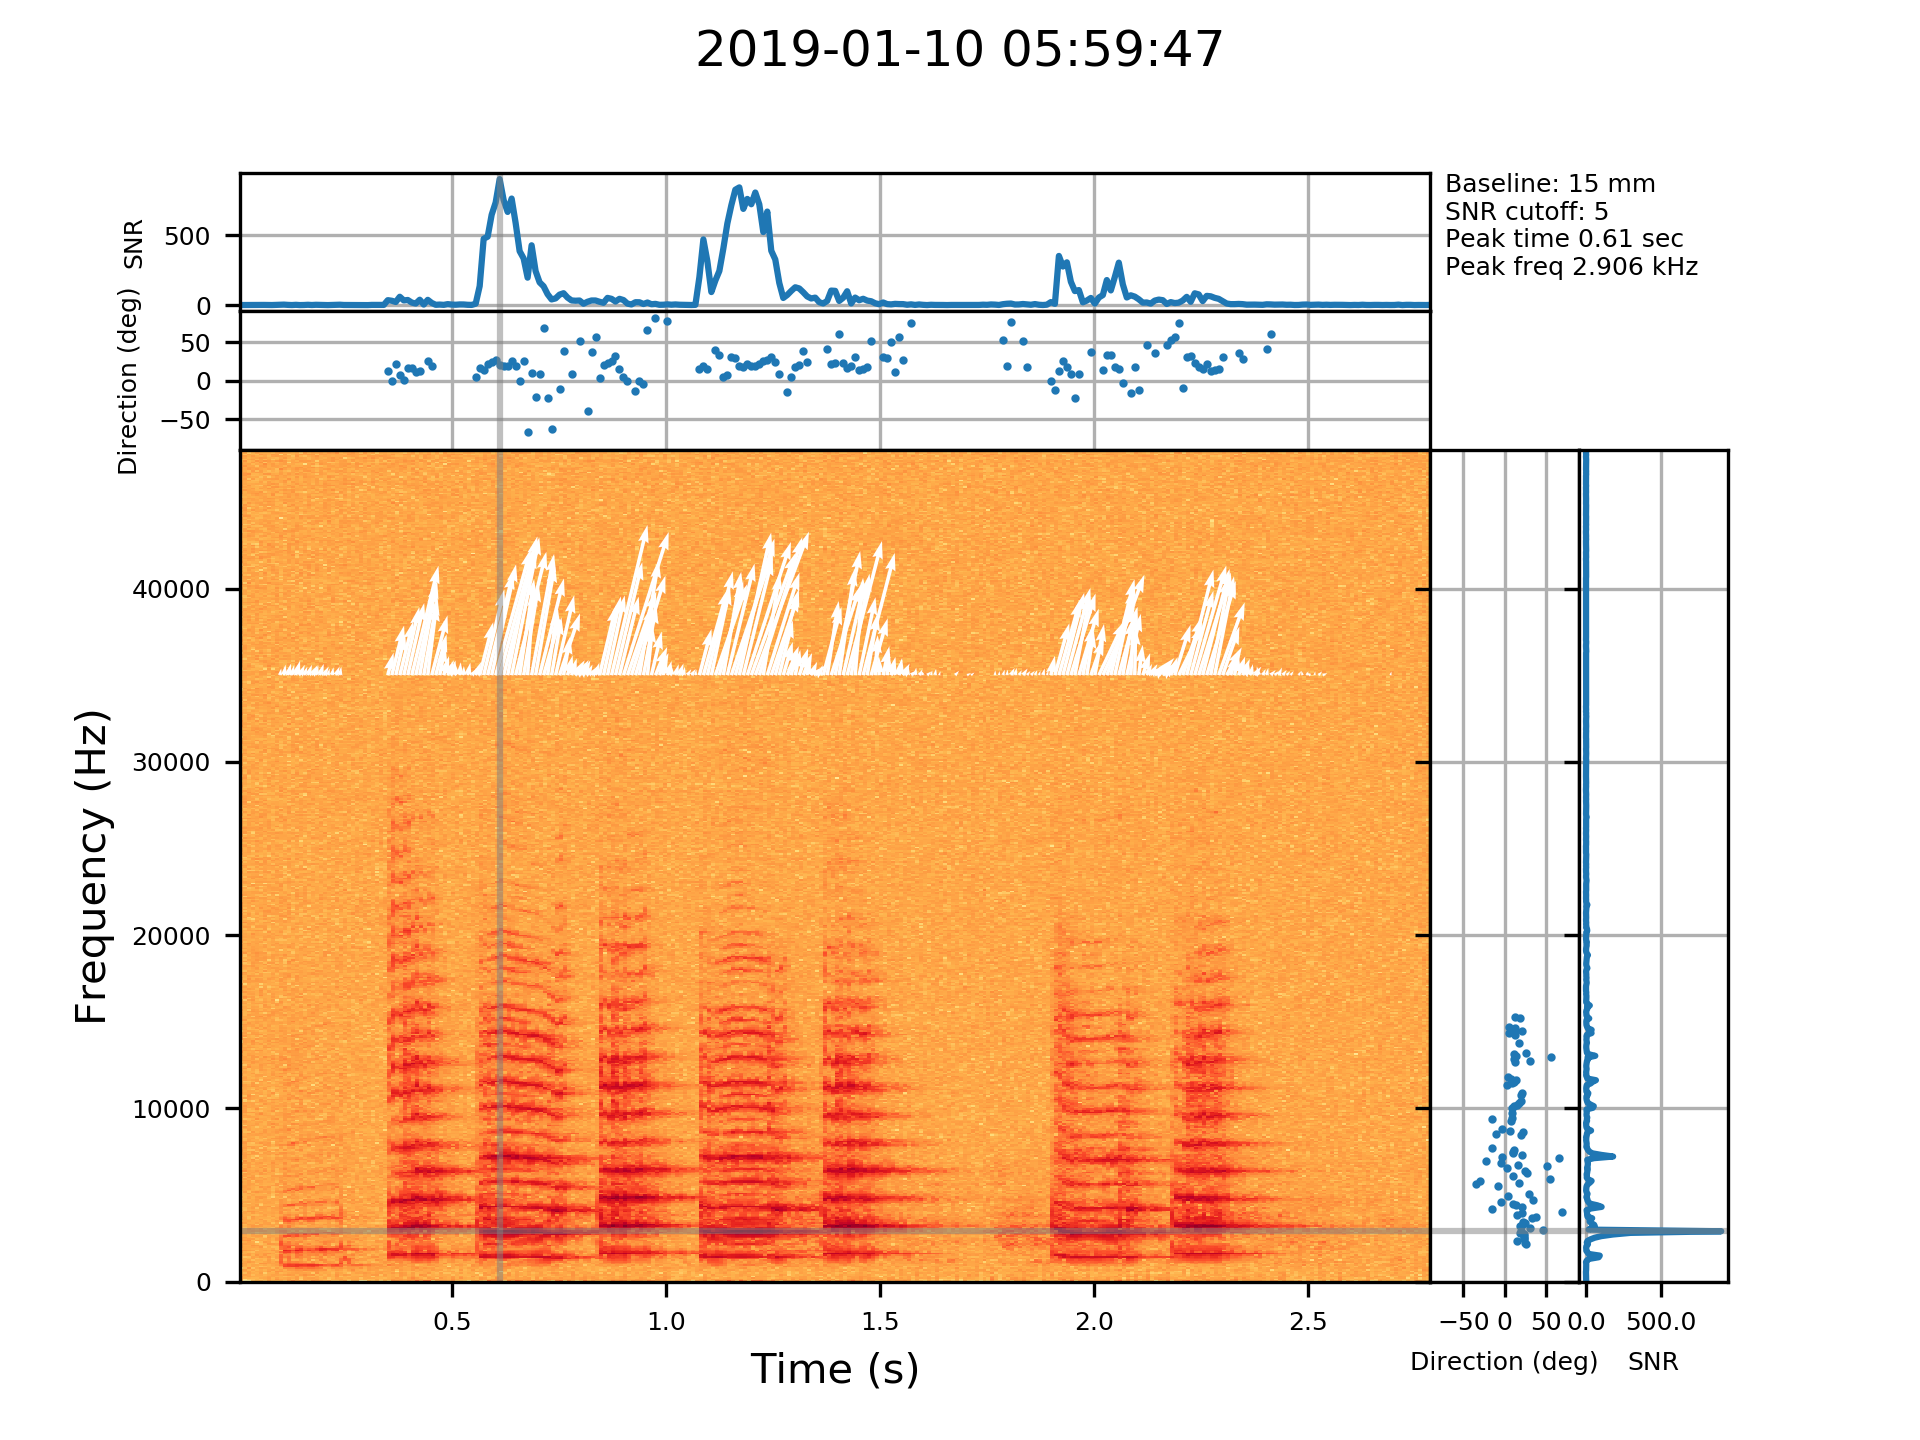 A  little wattlebird  ( Anthochaera chrysoptera ), observed on 10 Jan 2019. The main panel shows the spectrogram and the white vectors are the measurements of direction to the signal (vector length is related to signal strength). The top two panels show signal strength (measured in signal-to-noise ratio) and direction as a function of time for the frequency of the loudest signal (2.9 kHz, indicated by the horizontal line). The two right panels show SNR and direction as a function of frequency (indicated by the vertical line) at the time of the peak.